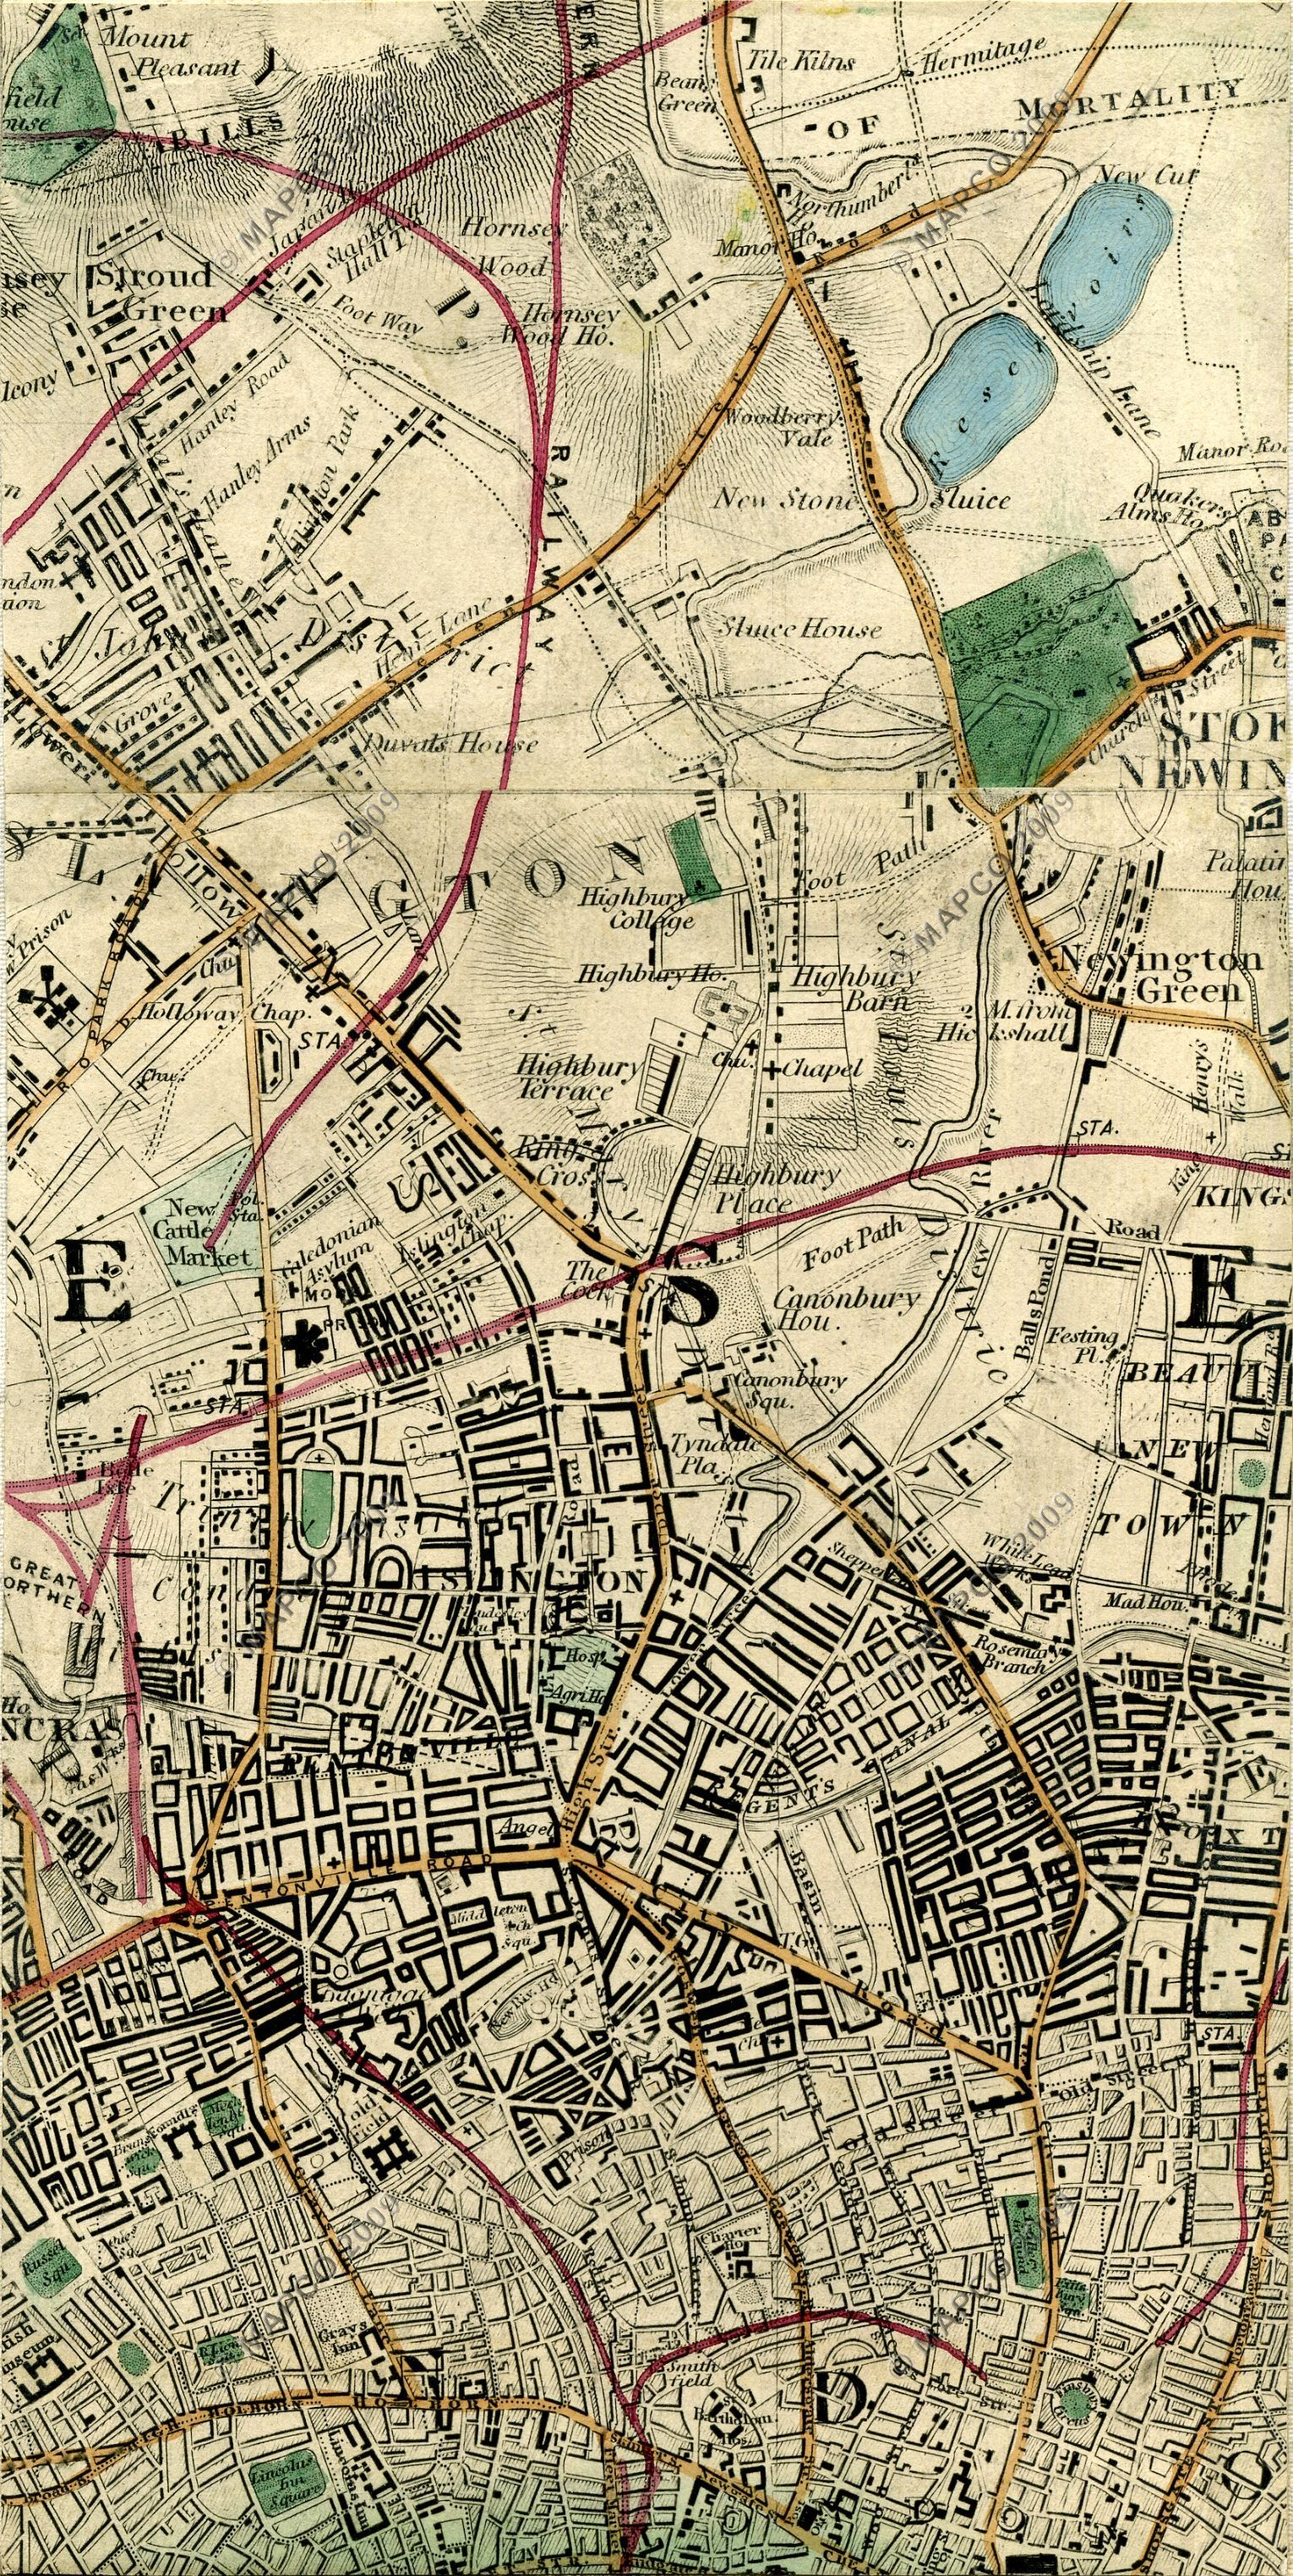 Topographic Map London.Wyld S New Topographical Map Of The Country In The Vicinity Of